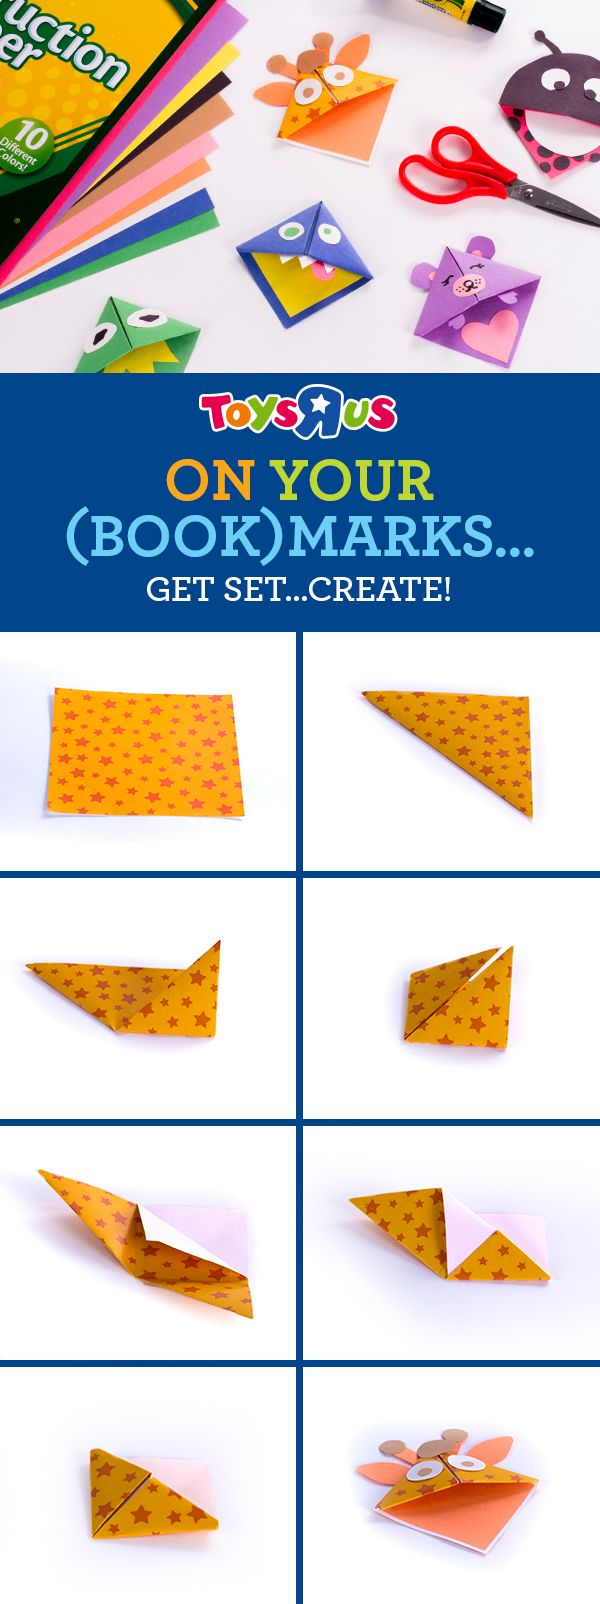 Give 'em another reason to read with fun and custom-made bookmarks for every page-turner. Just follow the tutorial above to create a unique reading pal that peeks from the top of their faves-and every book they read this year! All they need are some cool Crayola supplies: crayons, colored pencils, markers-plus their creativity-to give each bookmark a personal touch. Right now, ALL Crayola is BOGO 50% off! Stock up and start craftin'!